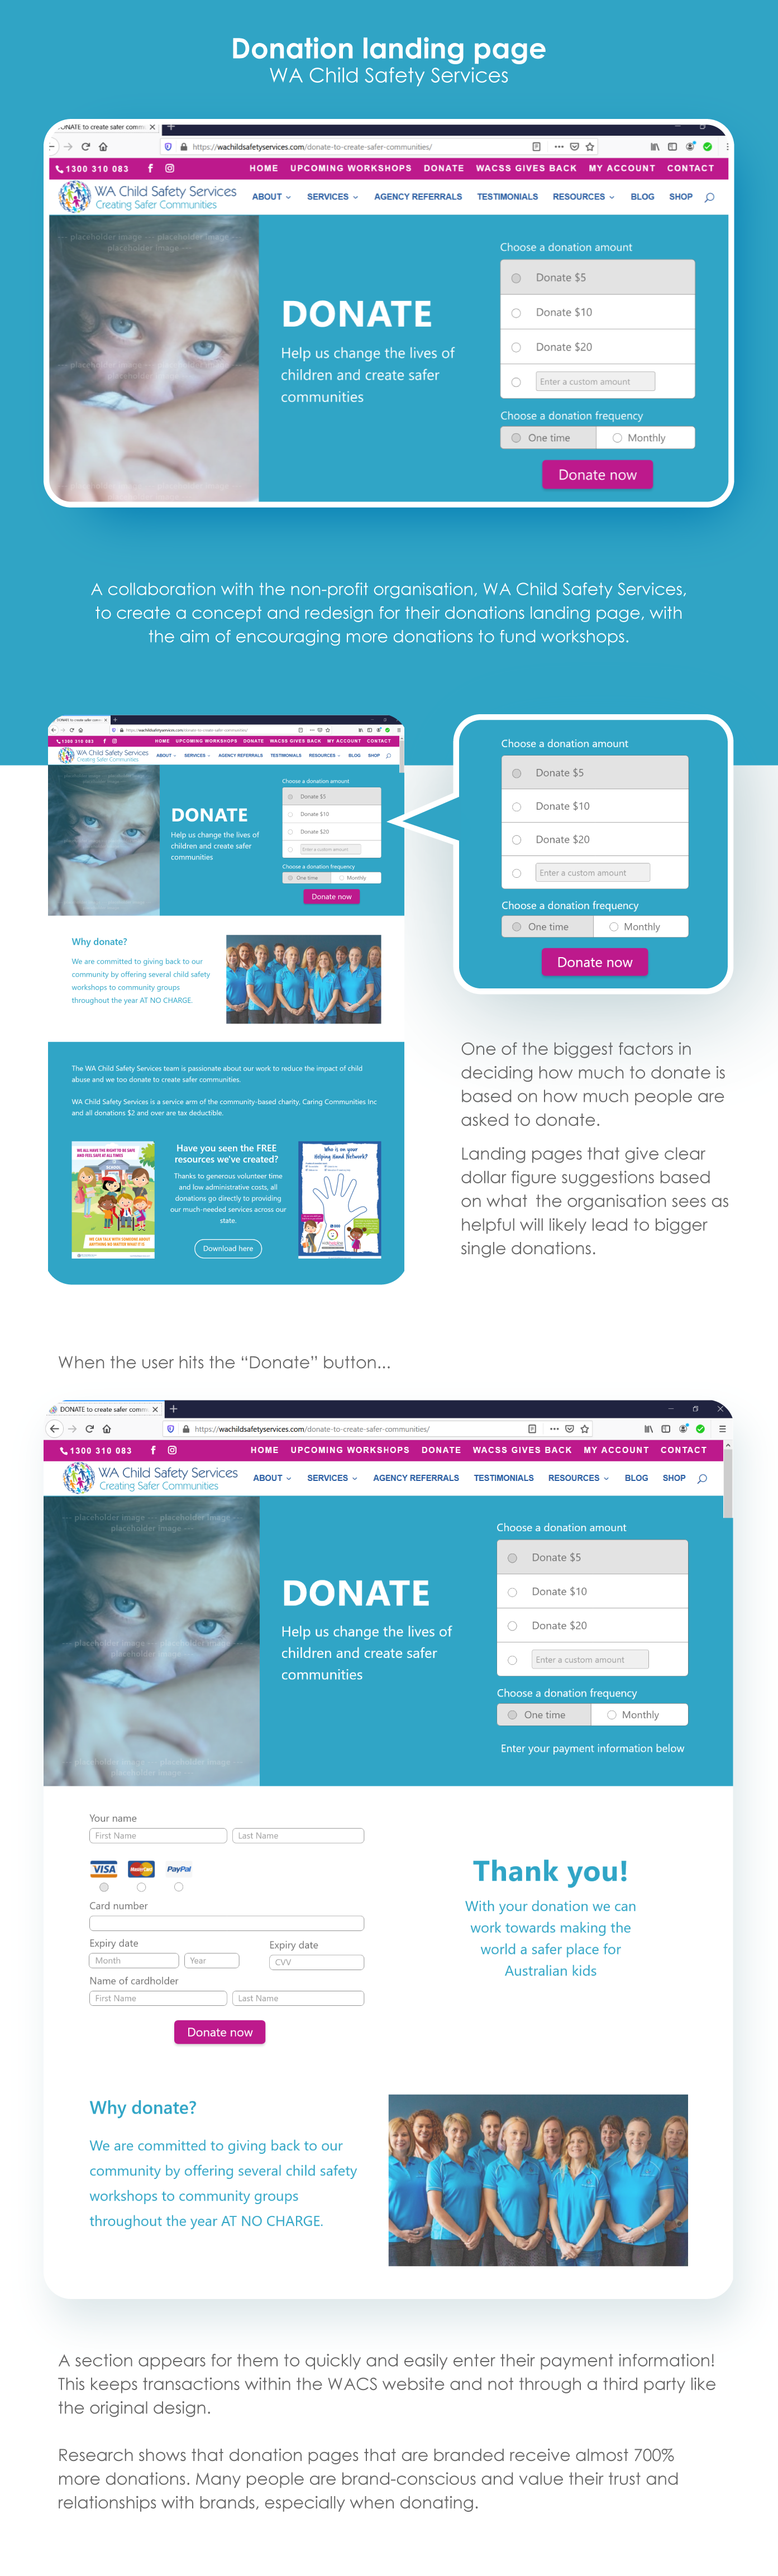 Image detailing the WA Child safety services landing page